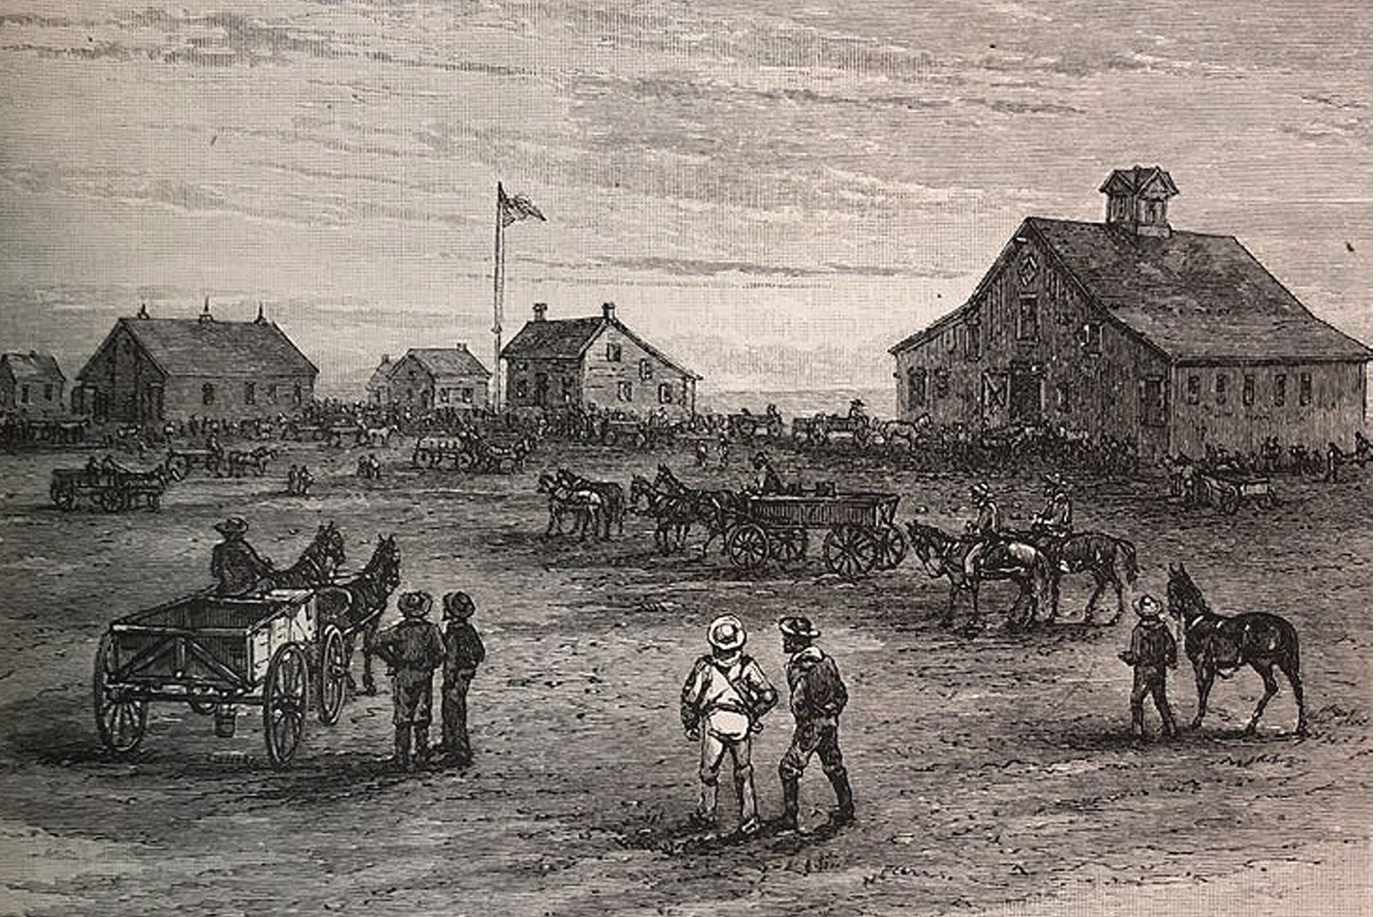 Depiction of a small American rural town circa early 1800s